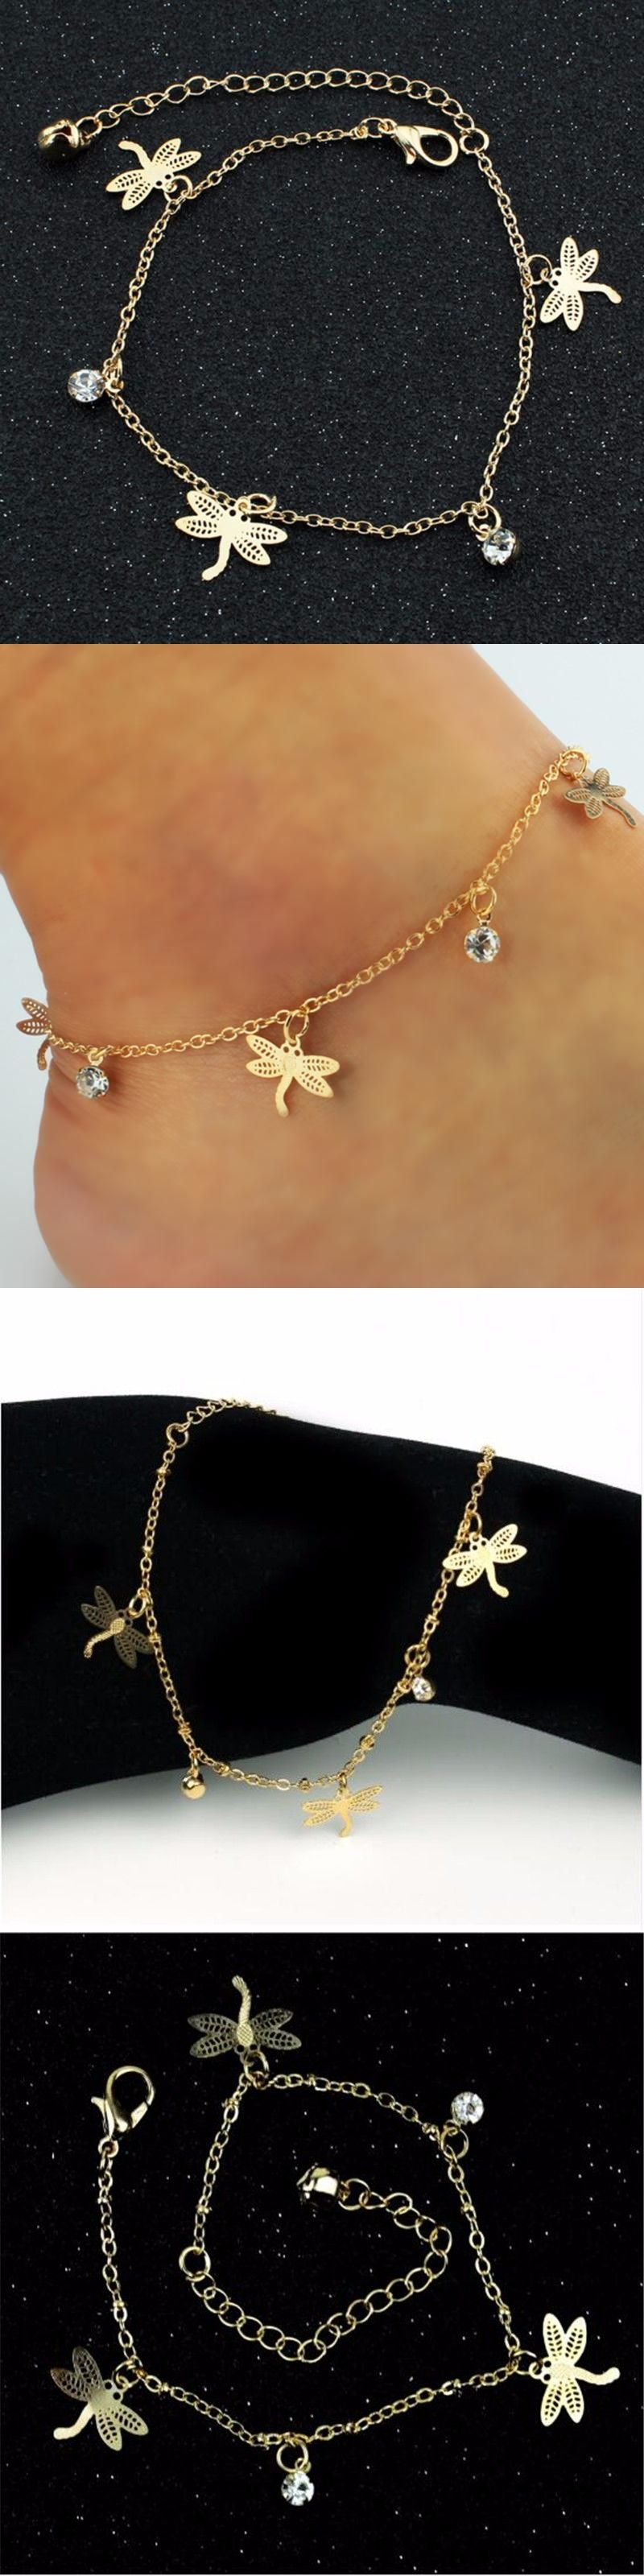 diy rings women anklet designer best for on bracelet ankle images jewelry engagement bracelets jewelery beautiful pinterest designs